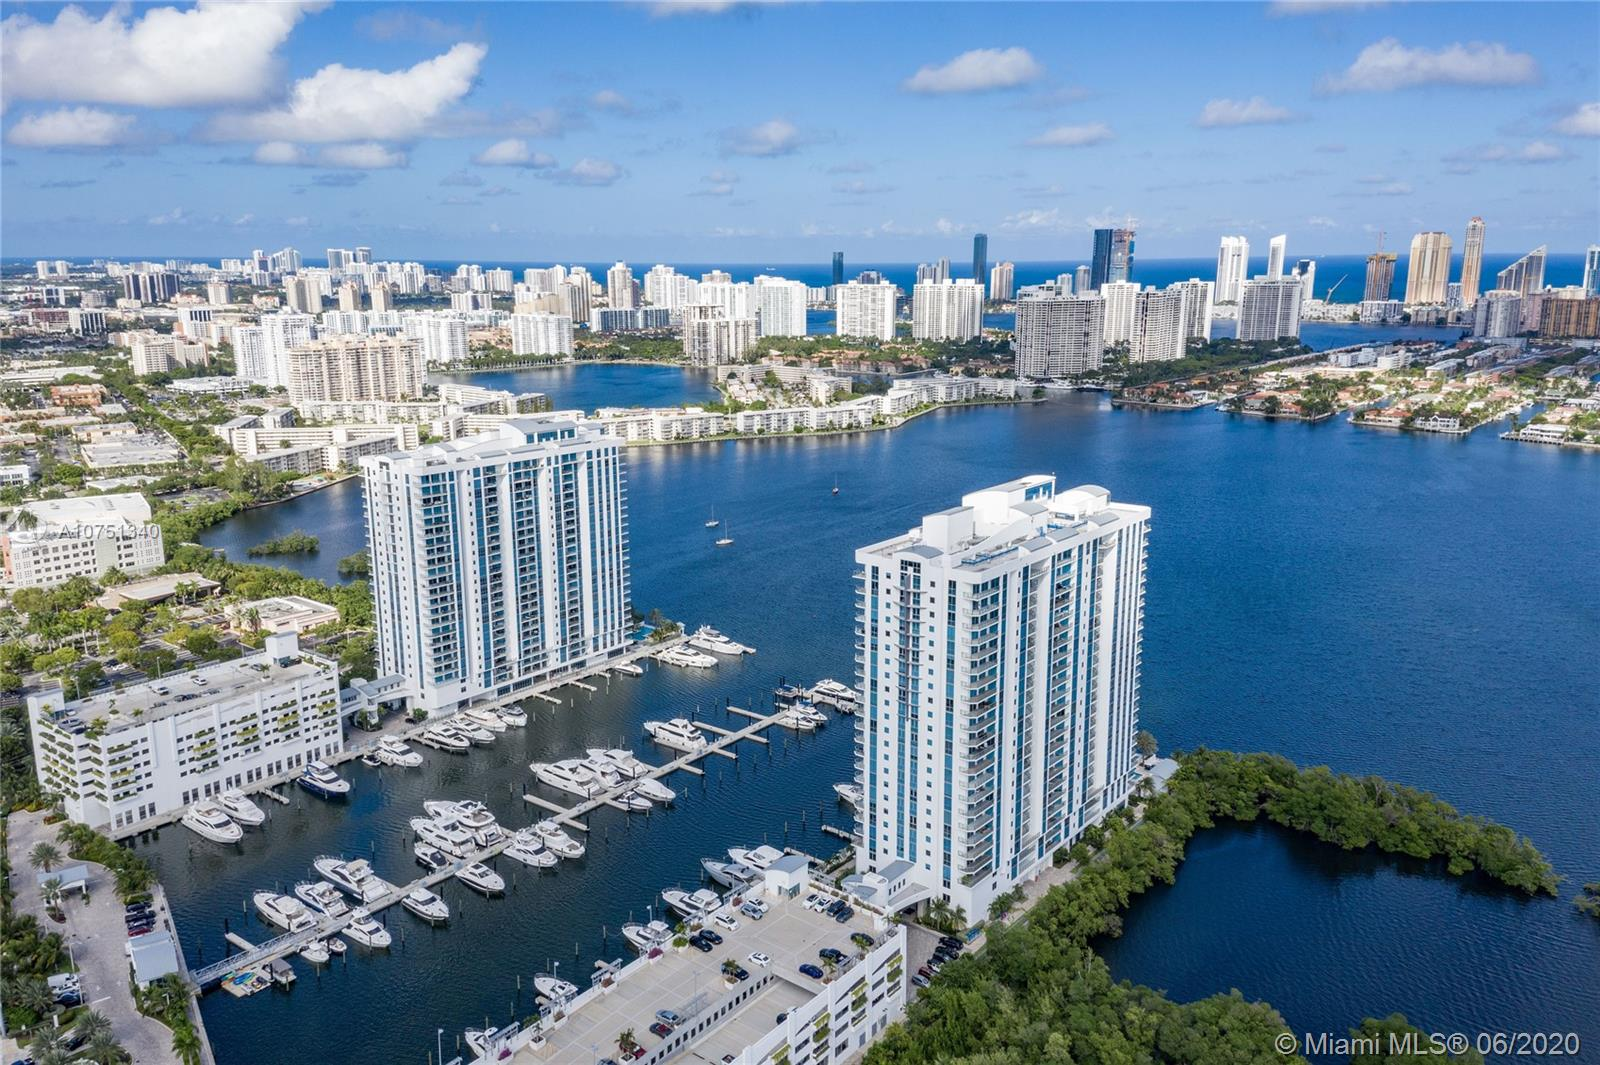 Marina Palms 1 #1206 - 17111 Biscayne Blvd #1206, North Miami Beach, FL 33160